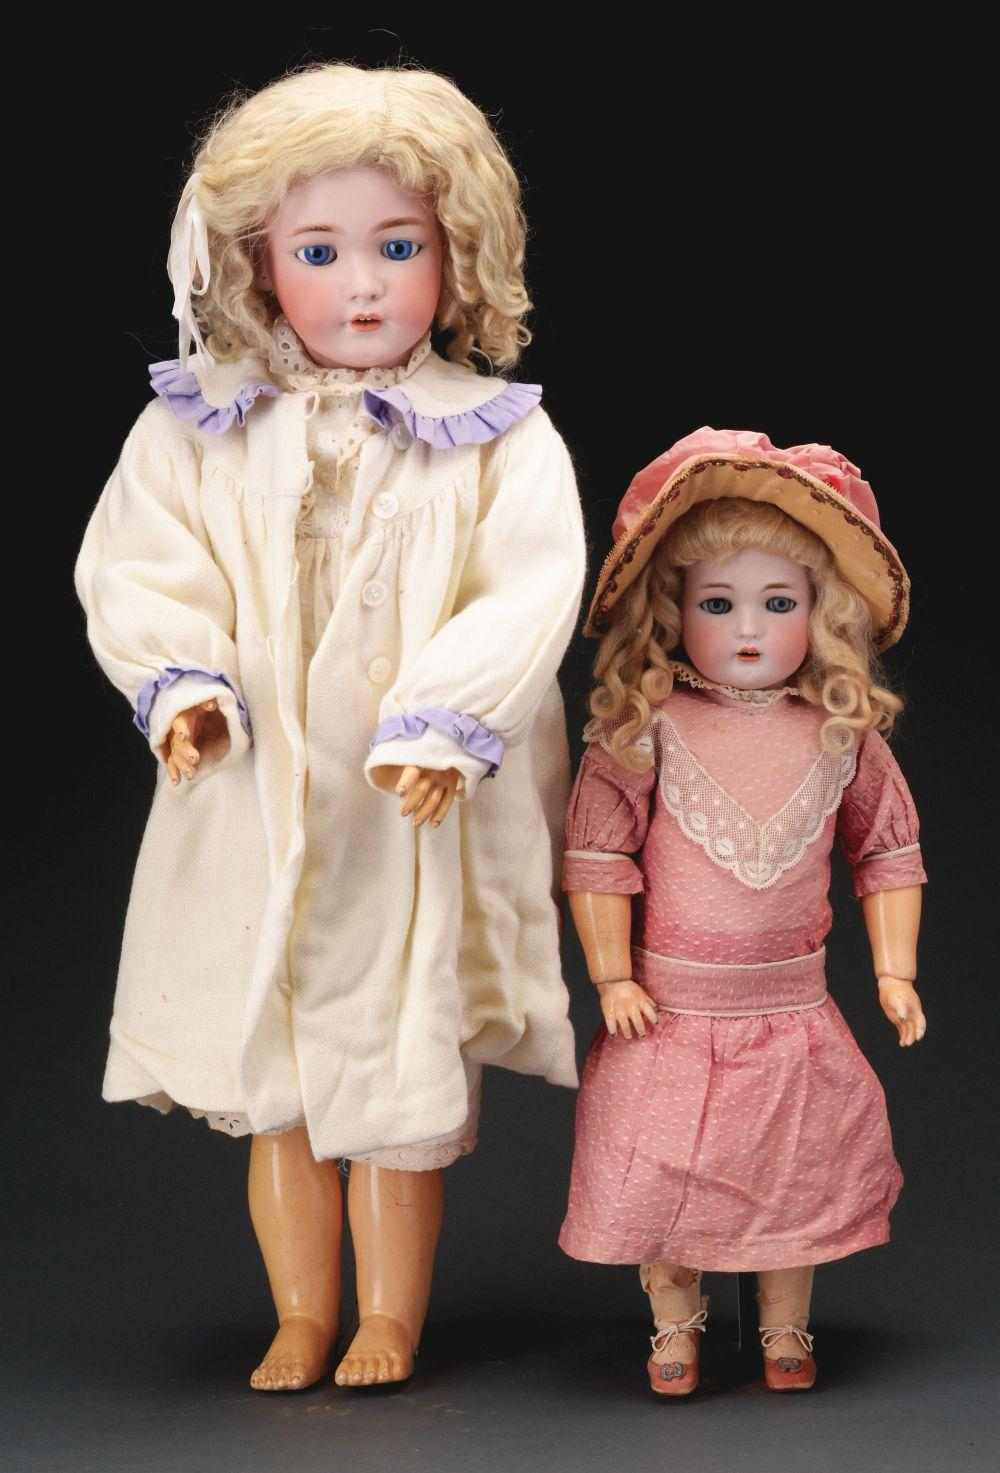 Lot of 2: German Bisque Socket Head Dolls.